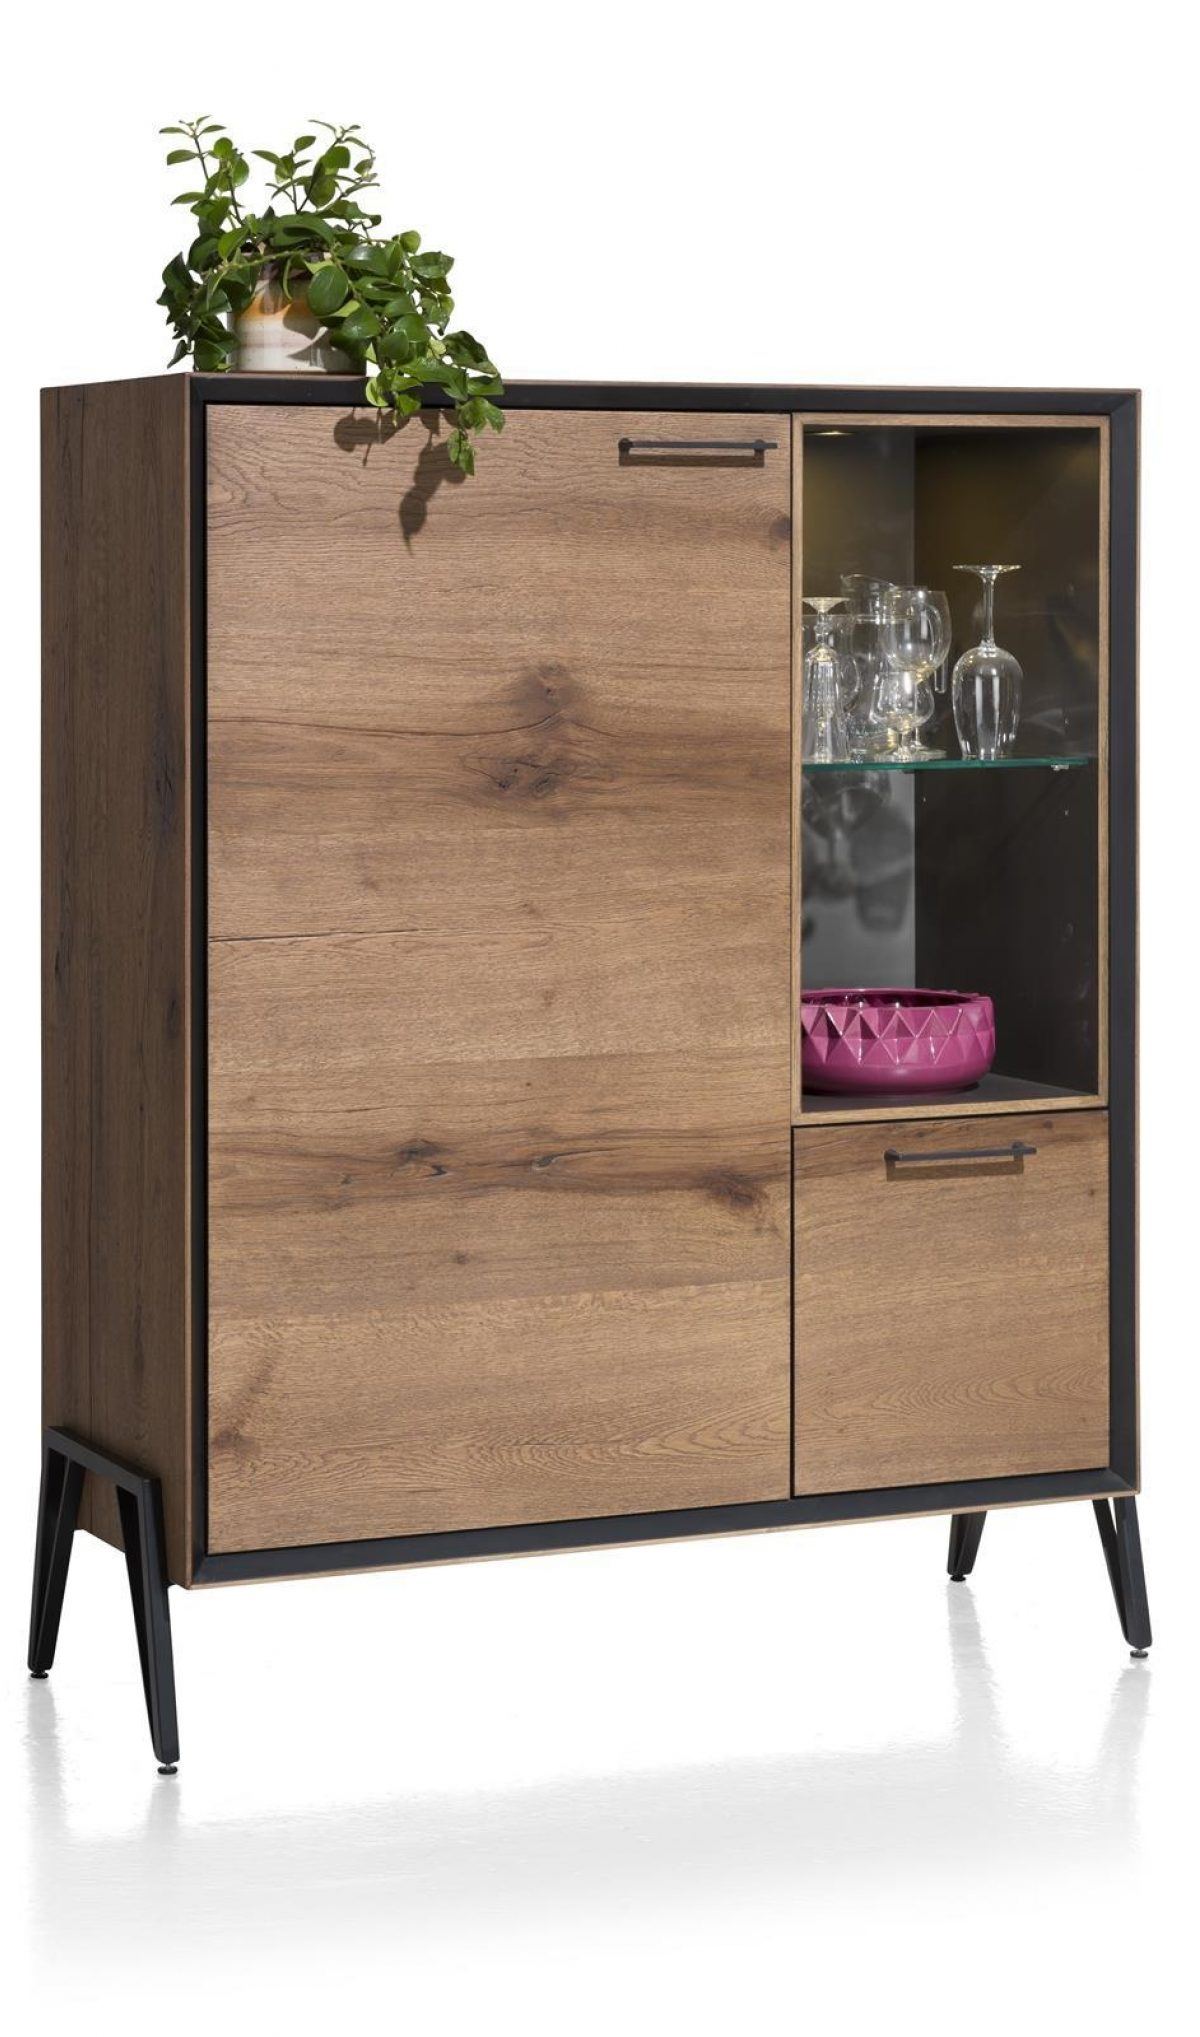 Hap 39805 janella highboard persp deco